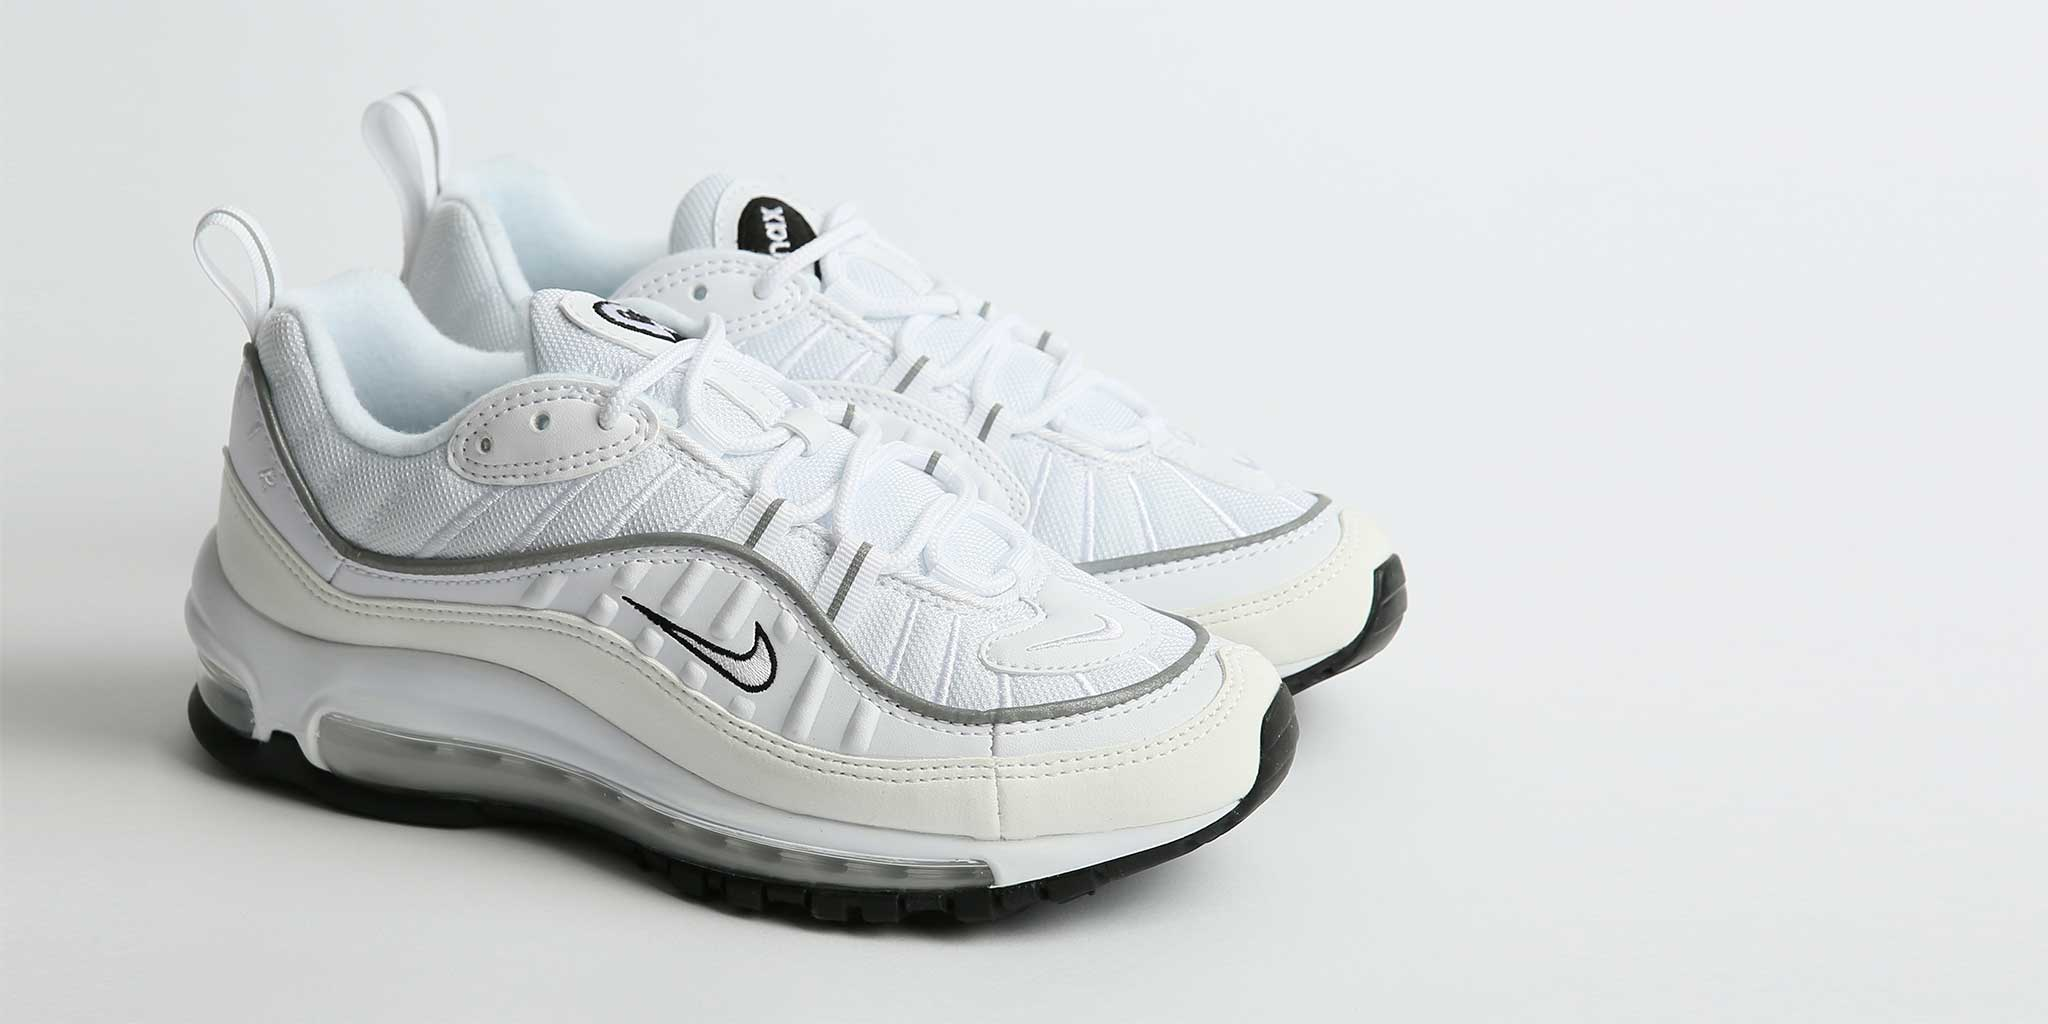 lowest price fb1de f2ea7 bulletin: Nike Women's Air Max 98 has arrived in a fresh ...